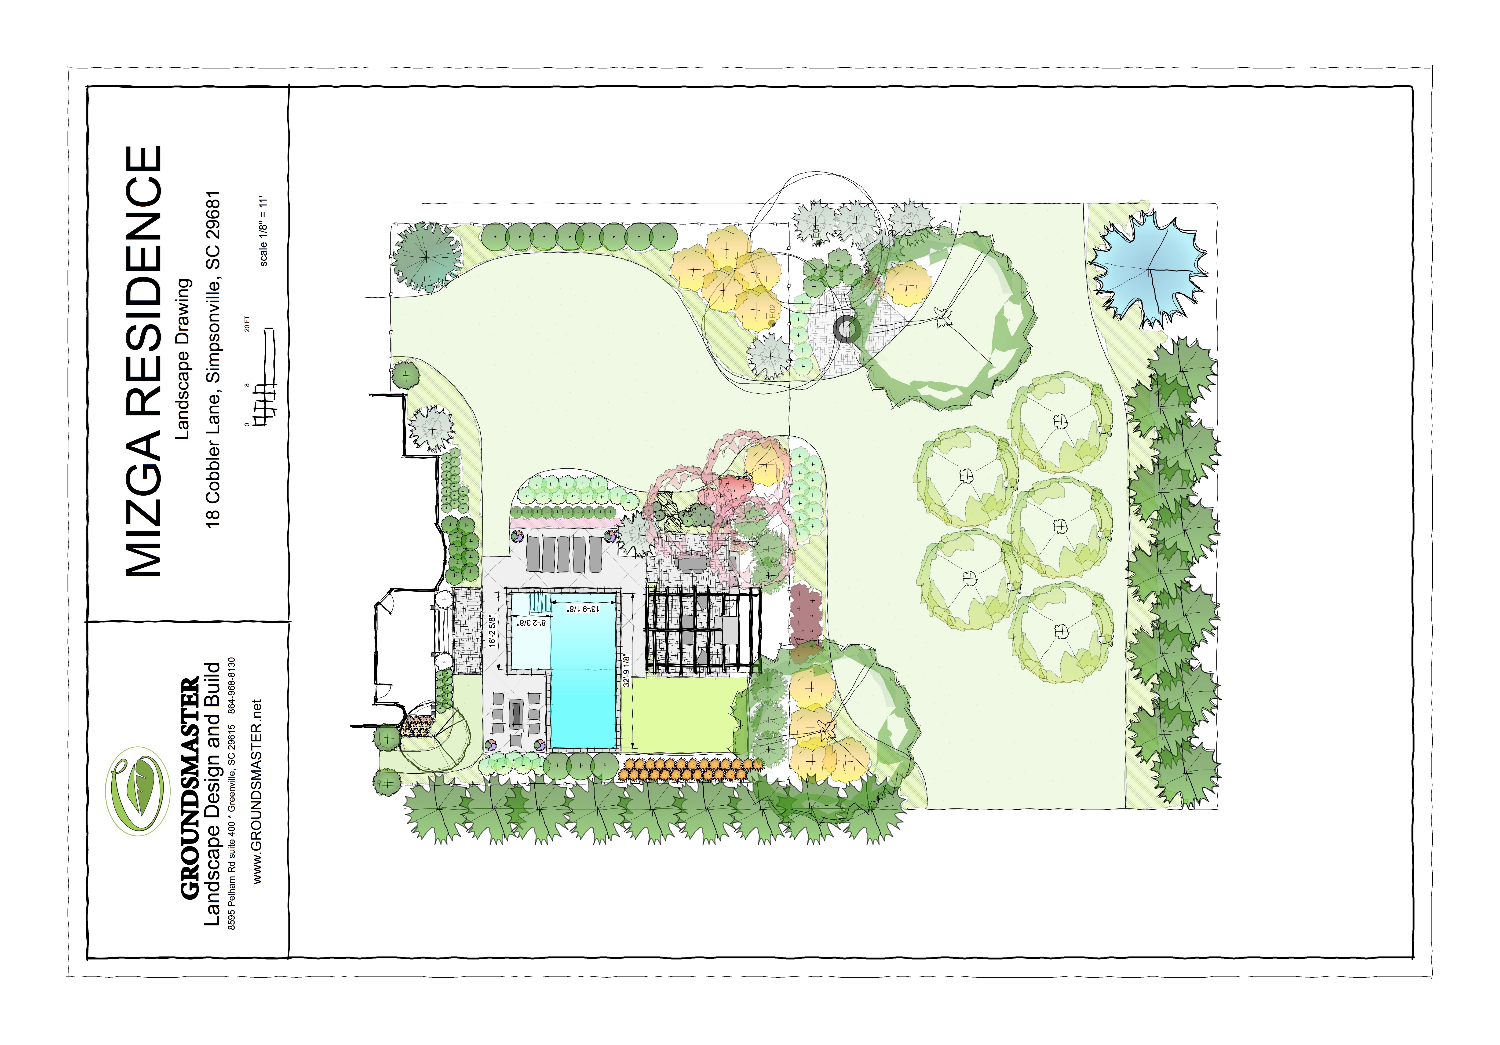 Pool and Landscape Plans